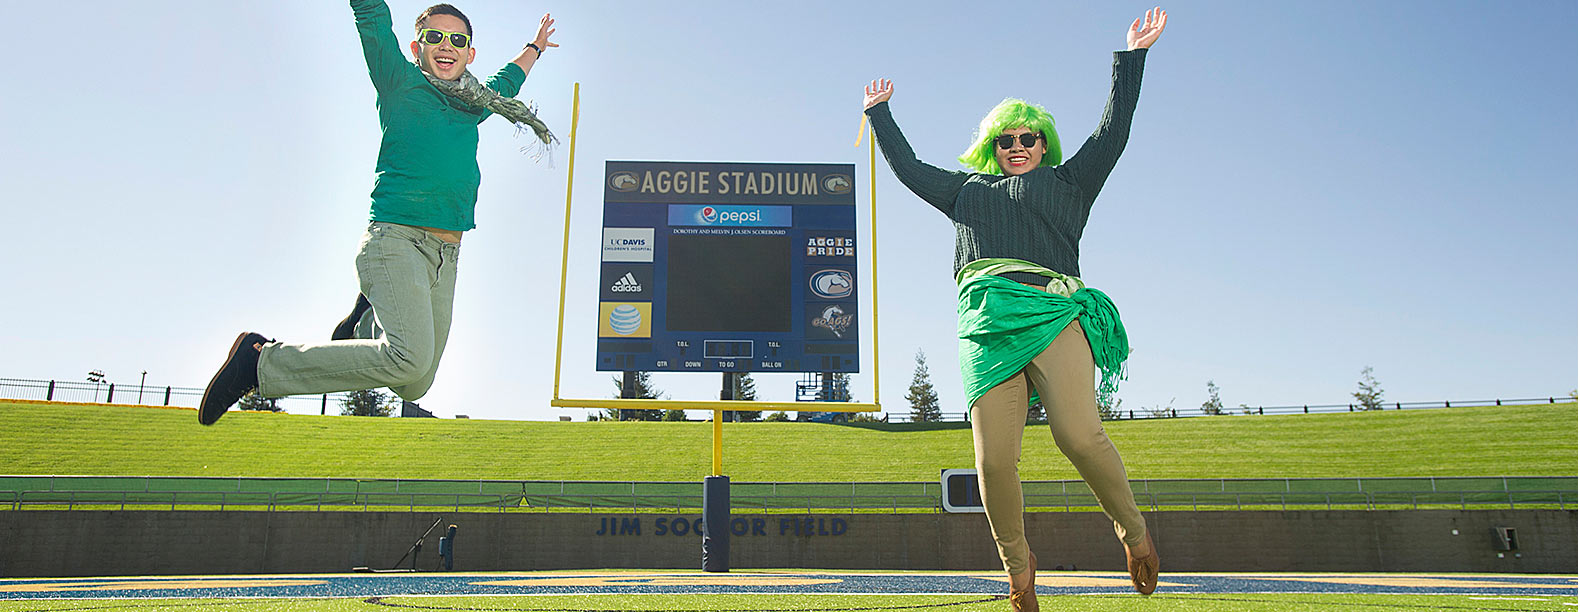 A woman and a man dressed in several pieces of green clothing pose in front of the Aggie Stadium scoreboard